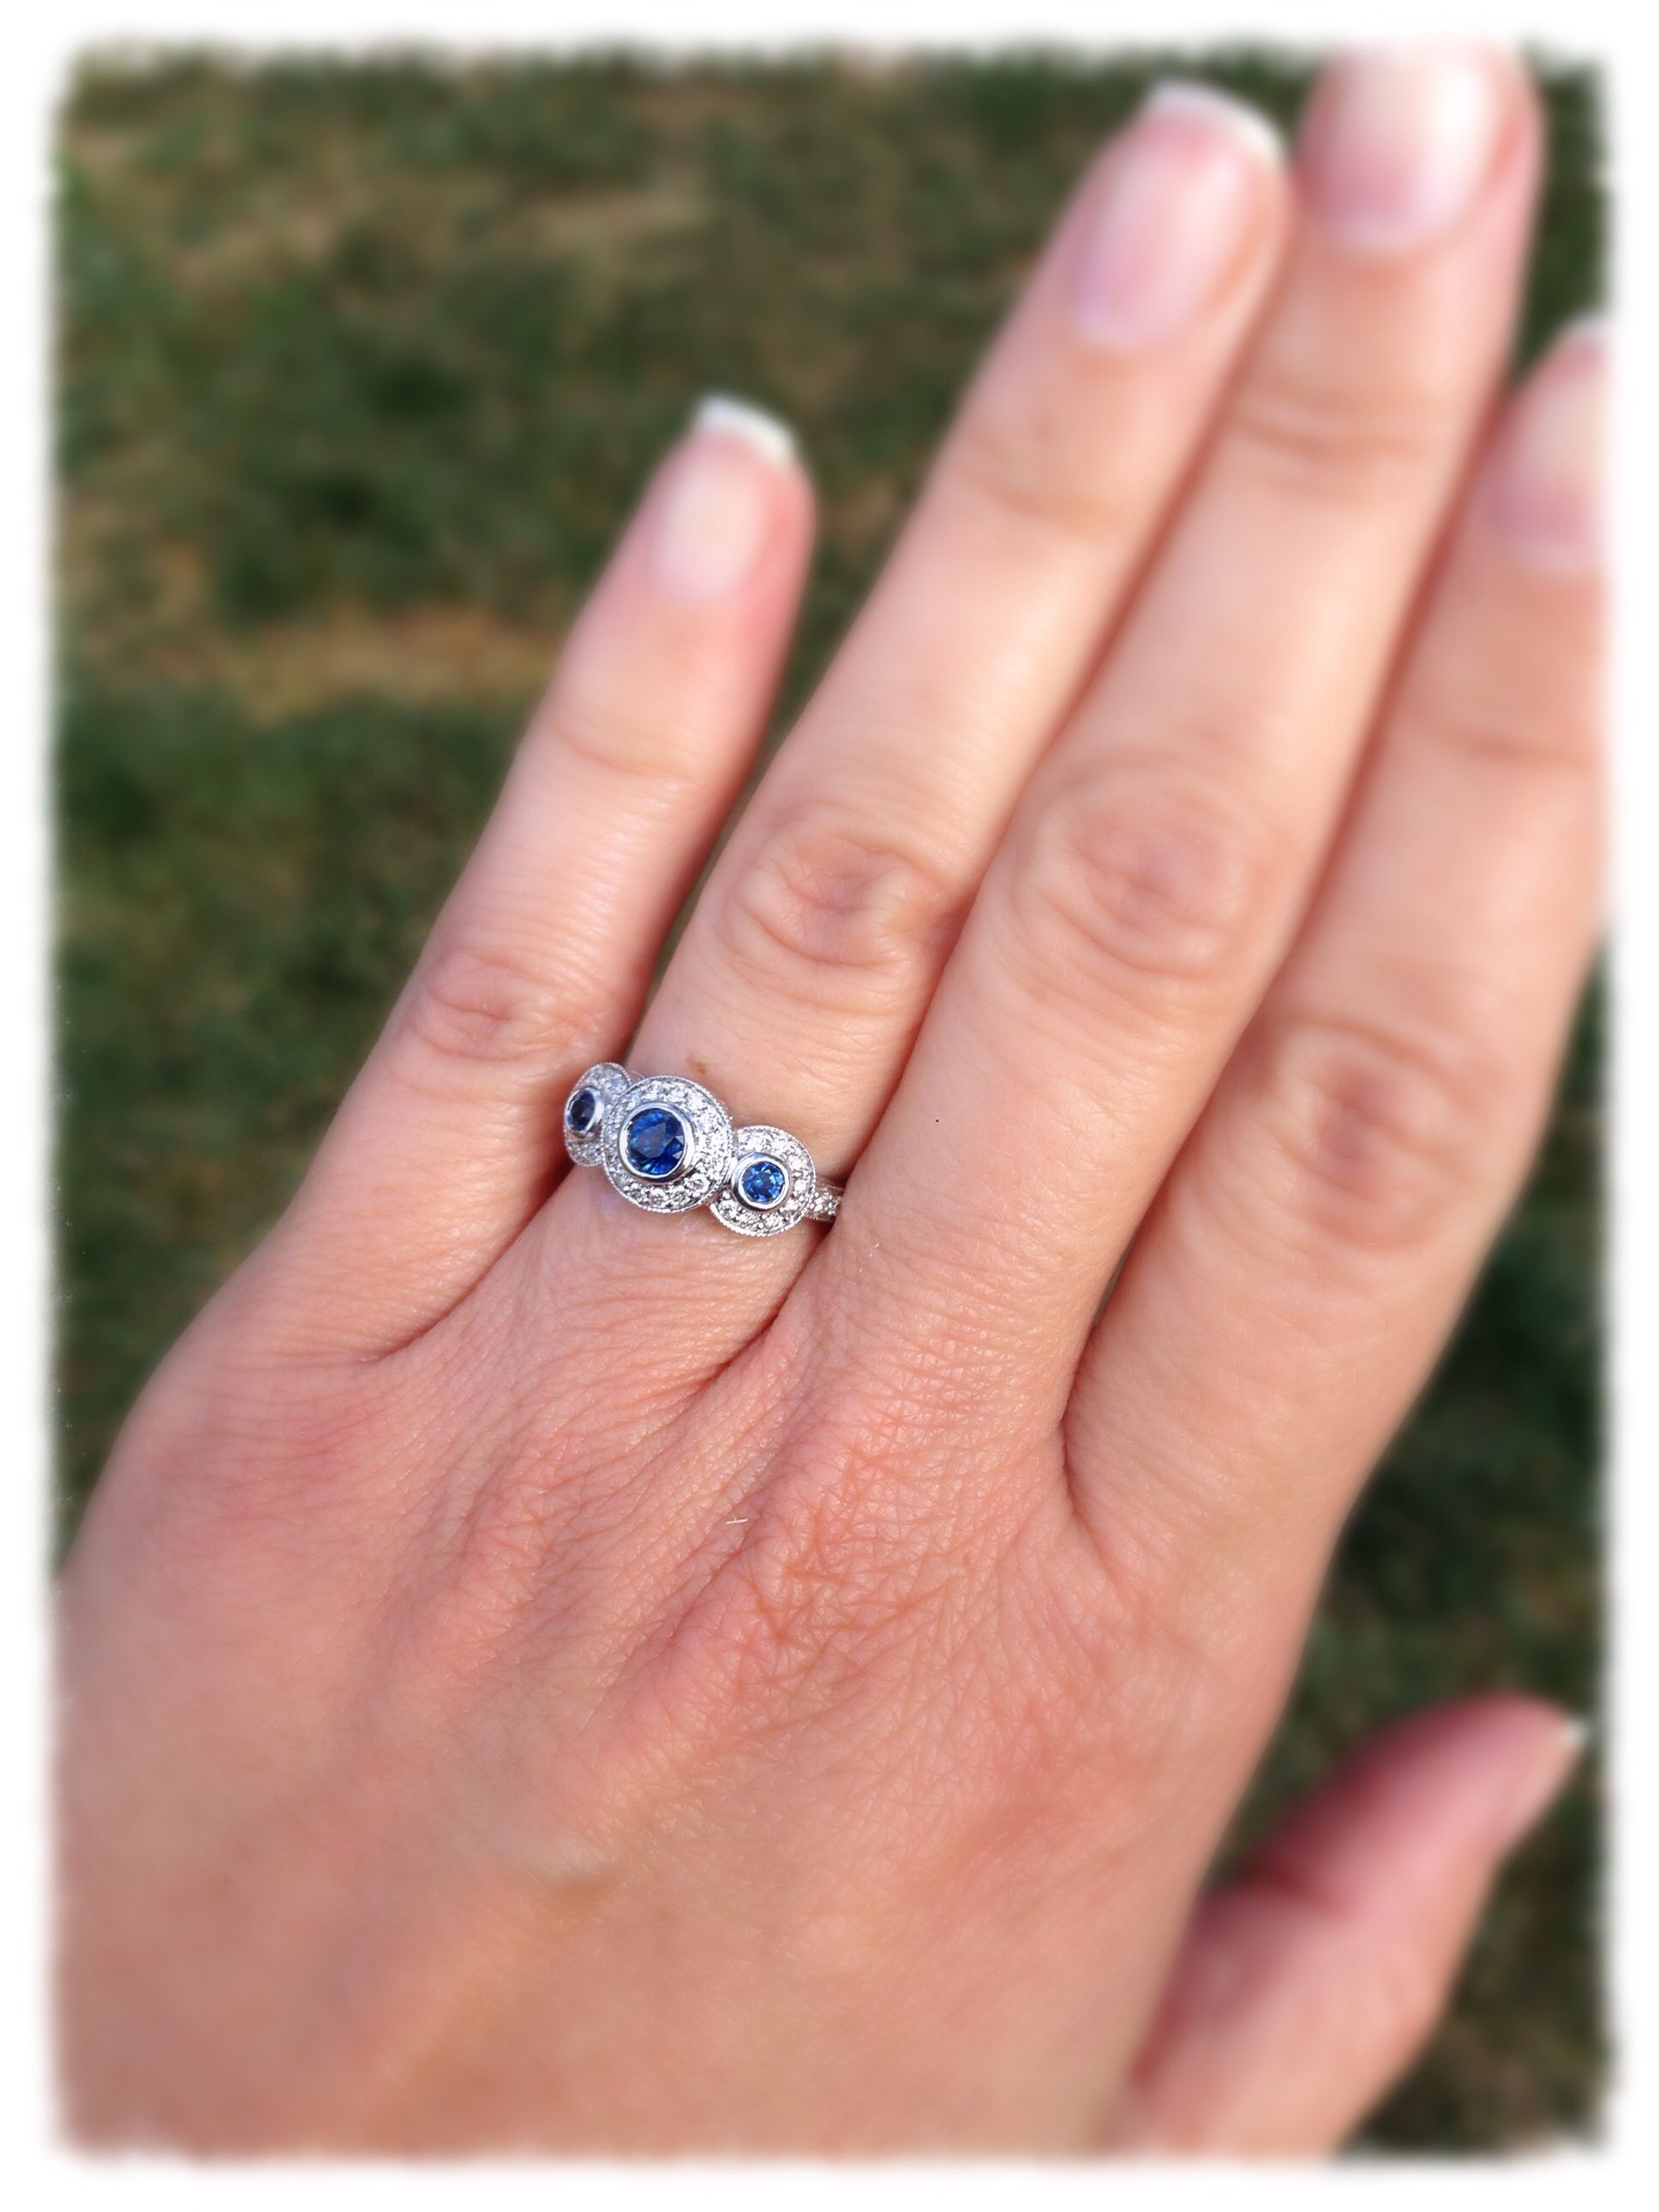 My diamond and sapphire engagement ring. | If I ever get remarried ...